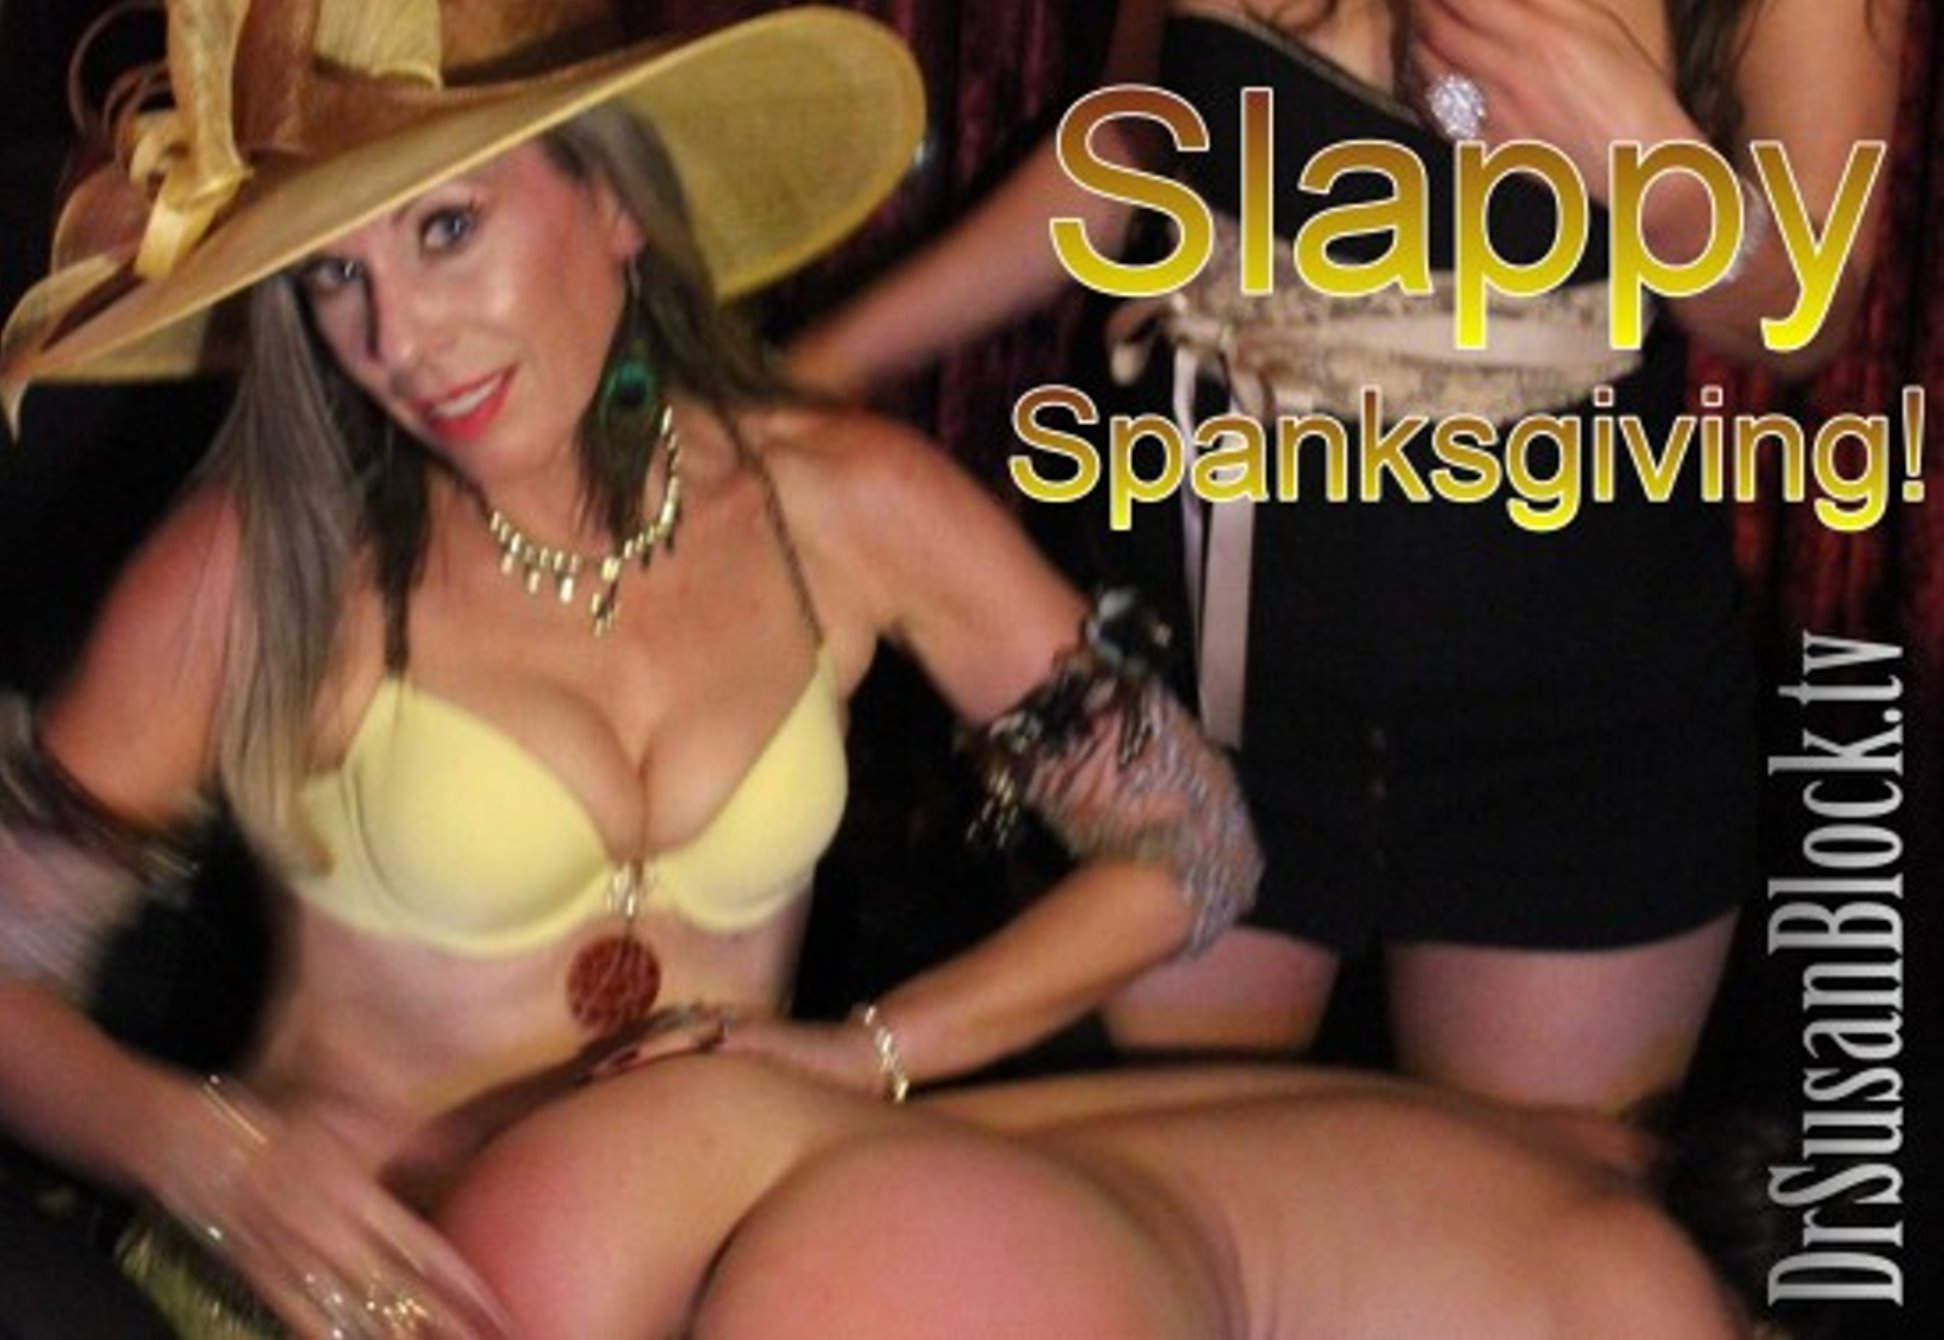 "Give Thanks, Then Get Spanked!  SPANKSGIVING, a traditional Bonoboville holiday on the Saturday after Thanksgiving.   After we get stuffed from both ends on Thursday, it's time for SPANKSgiving Saturday night  Thanksgiving  ""celebrates"" the genocide of Native Americans."